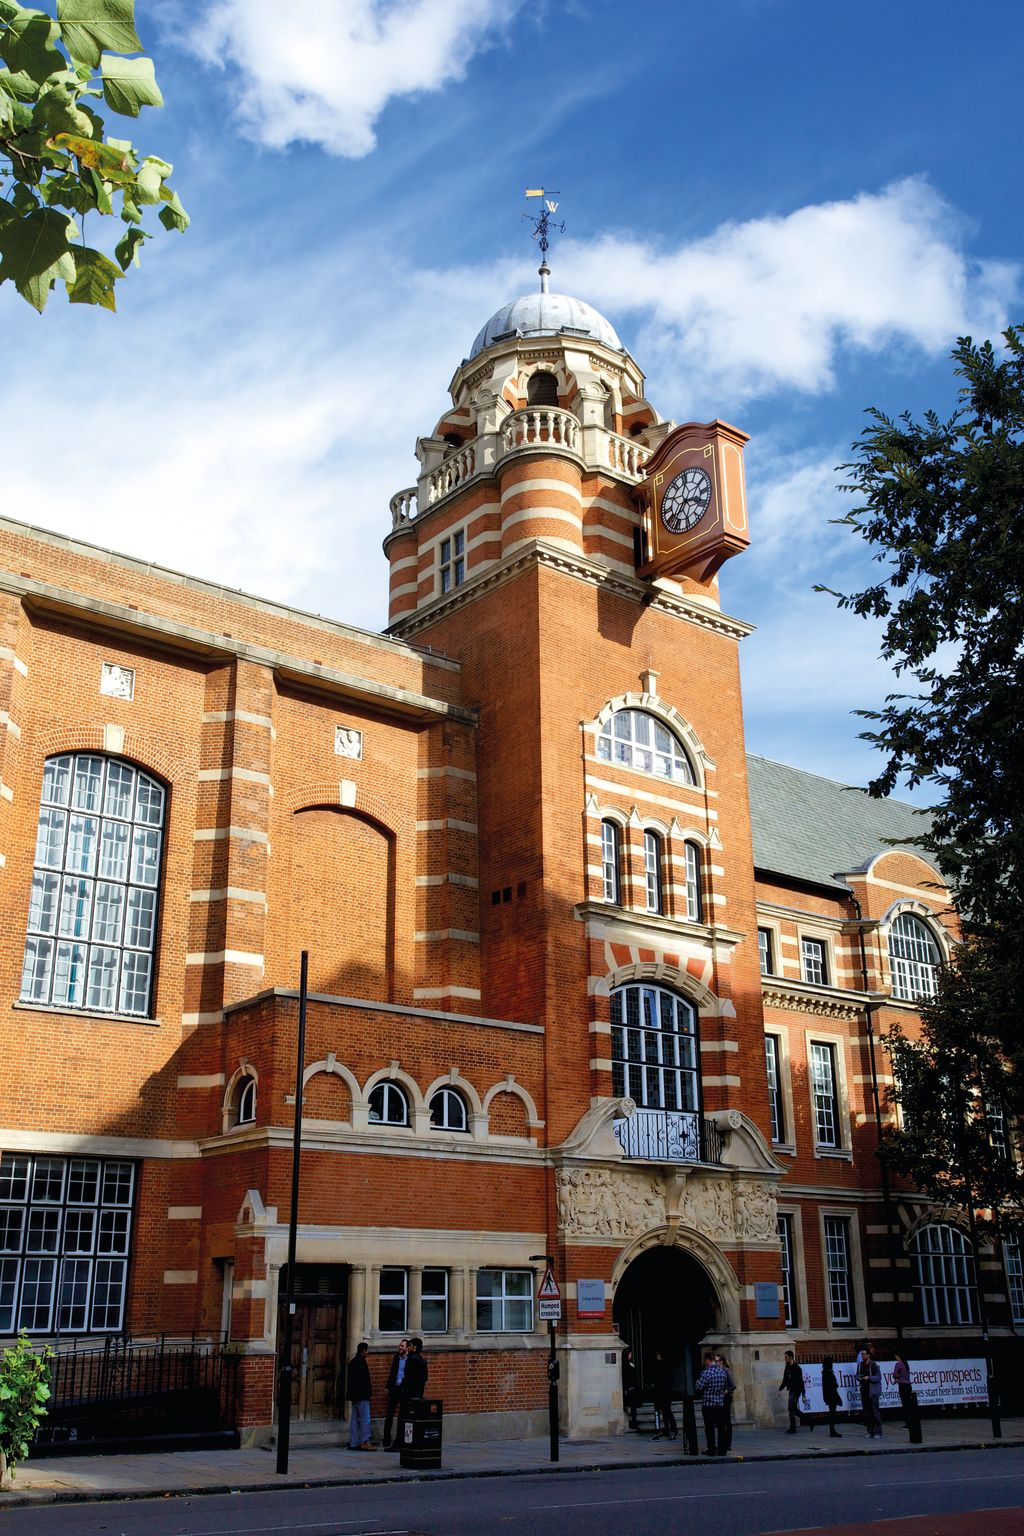 College Building at City, University of London